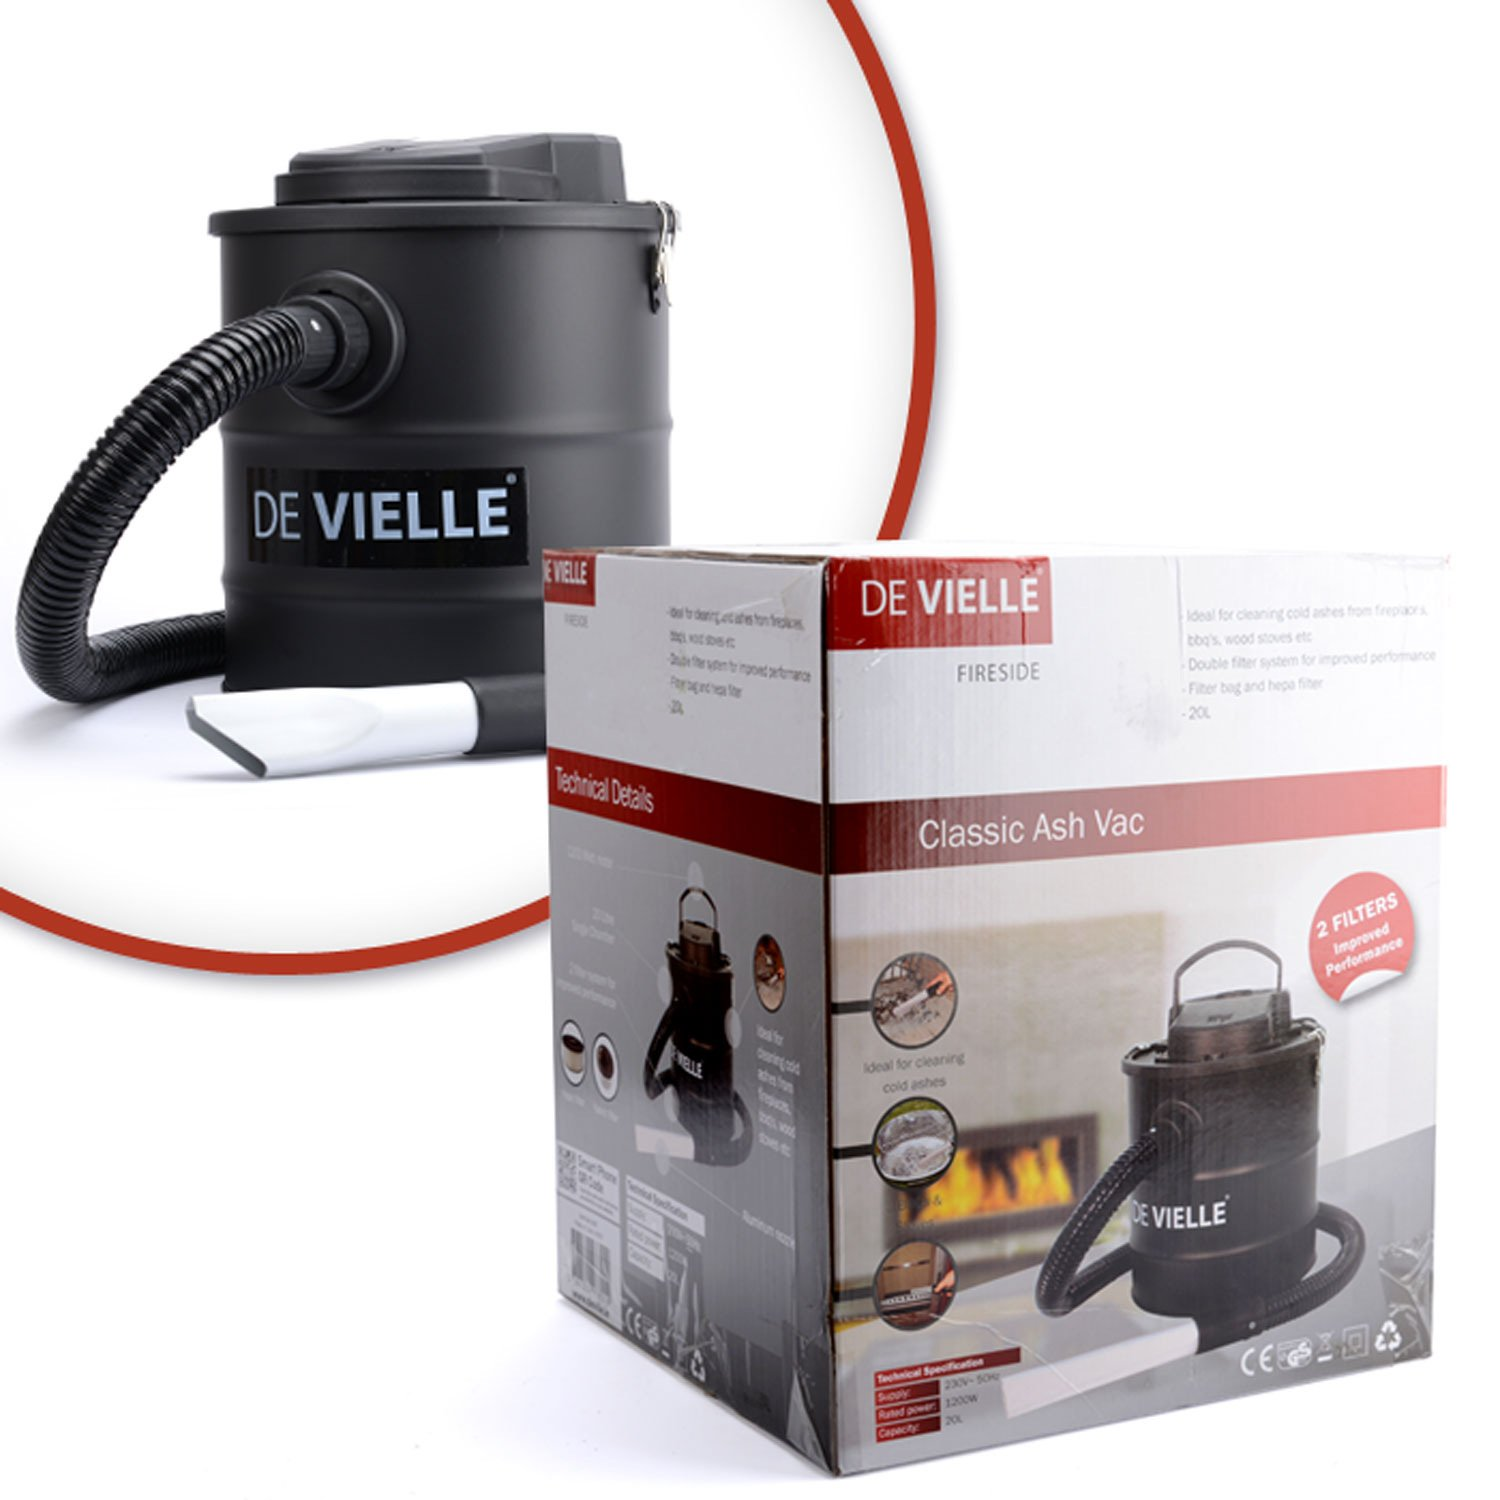 Ash Vacuum Cleaner Hoover for Fireplace & Wood Burner 20L 1200W by De Vielle: Amazon.co.uk: Kitchen & Home